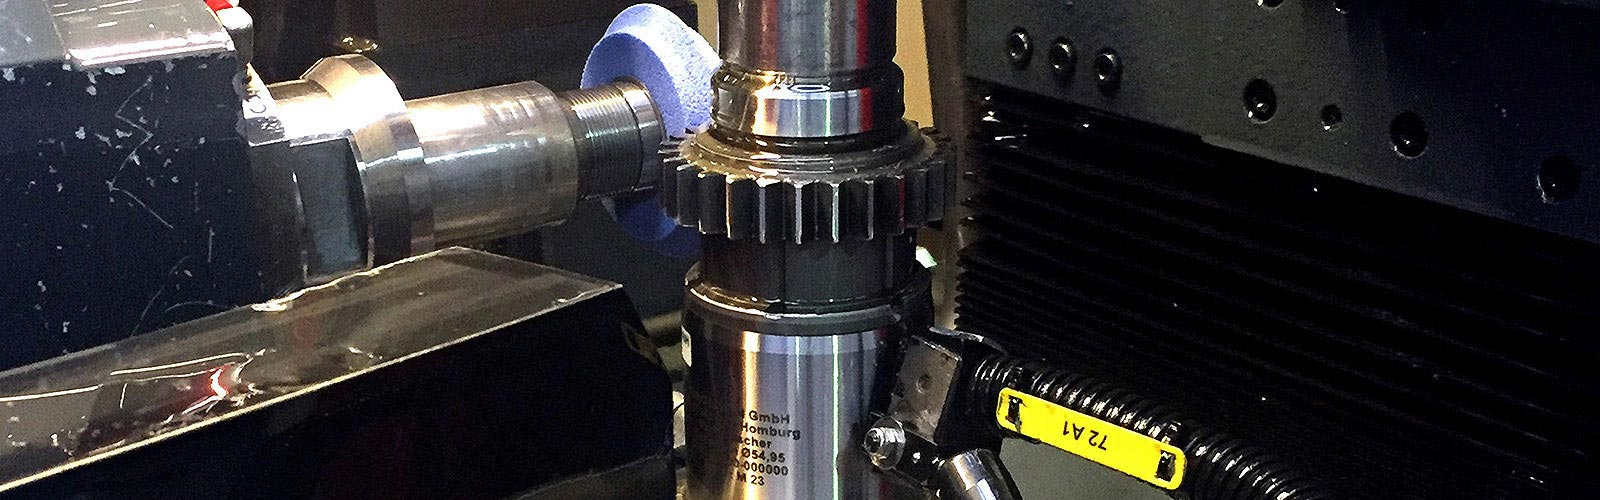 The specialist for gearing technology and fine machining